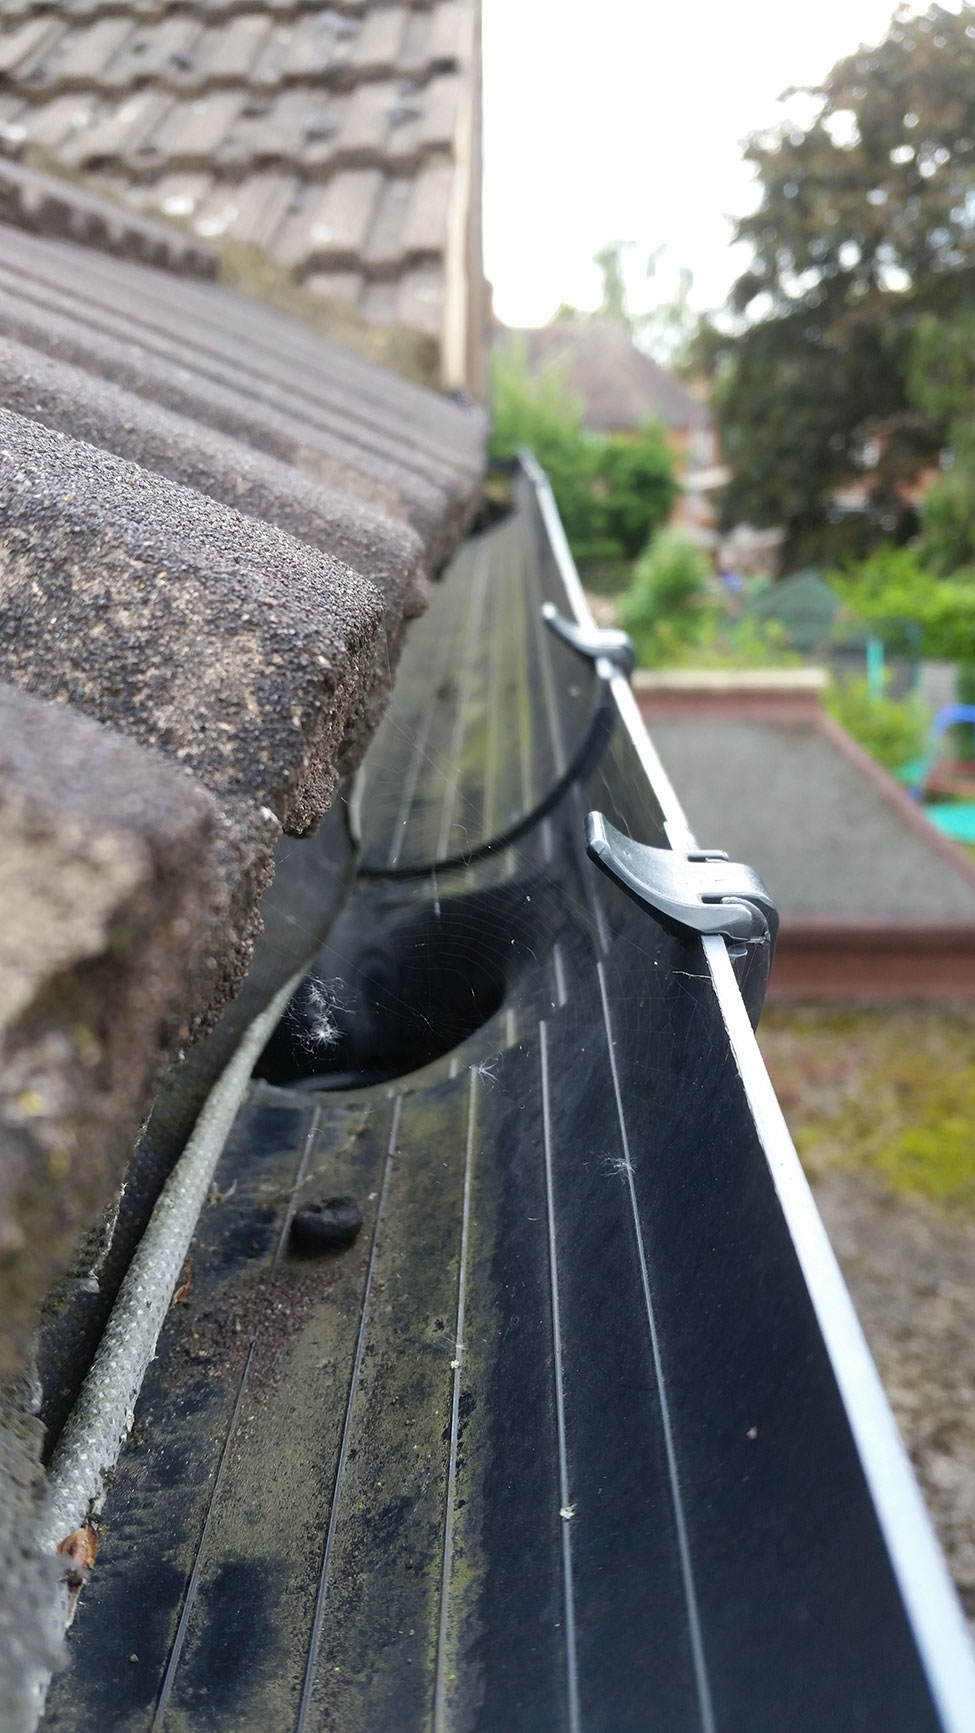 Gutter Cleaning and Unblocking